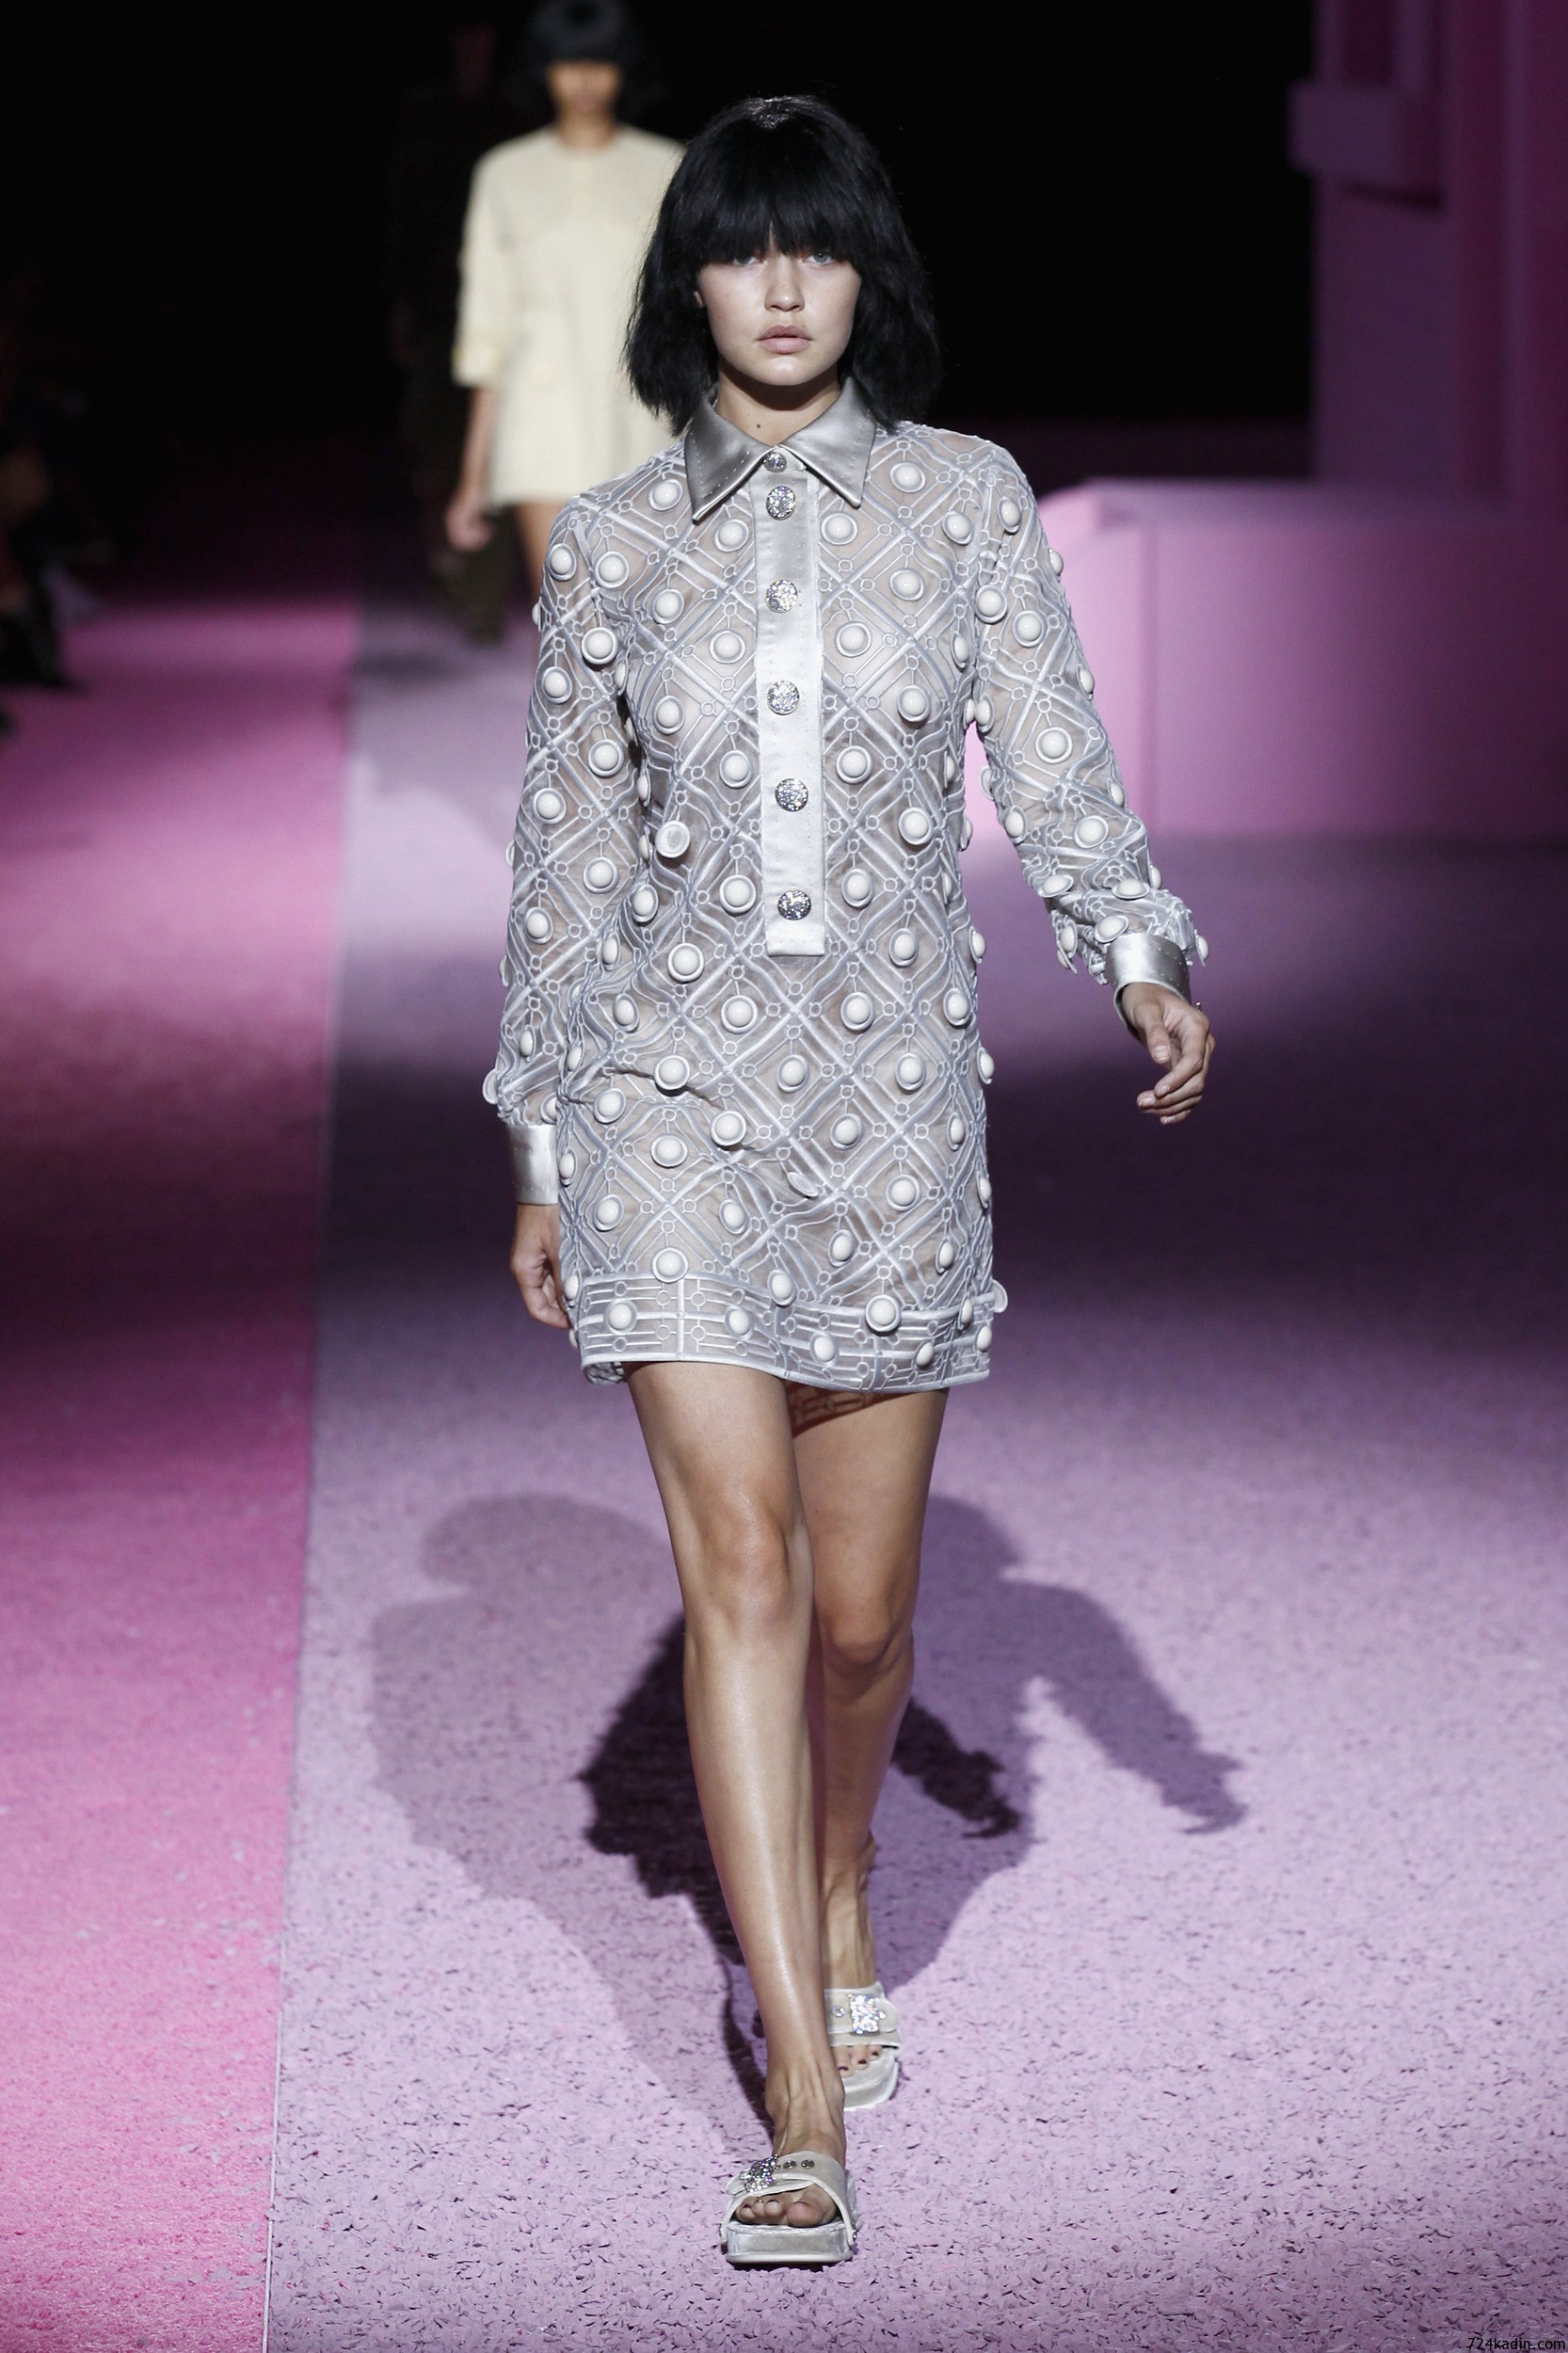 marc-jacobs-runway-mercedes-benz-fashion-week-spring-2015-1